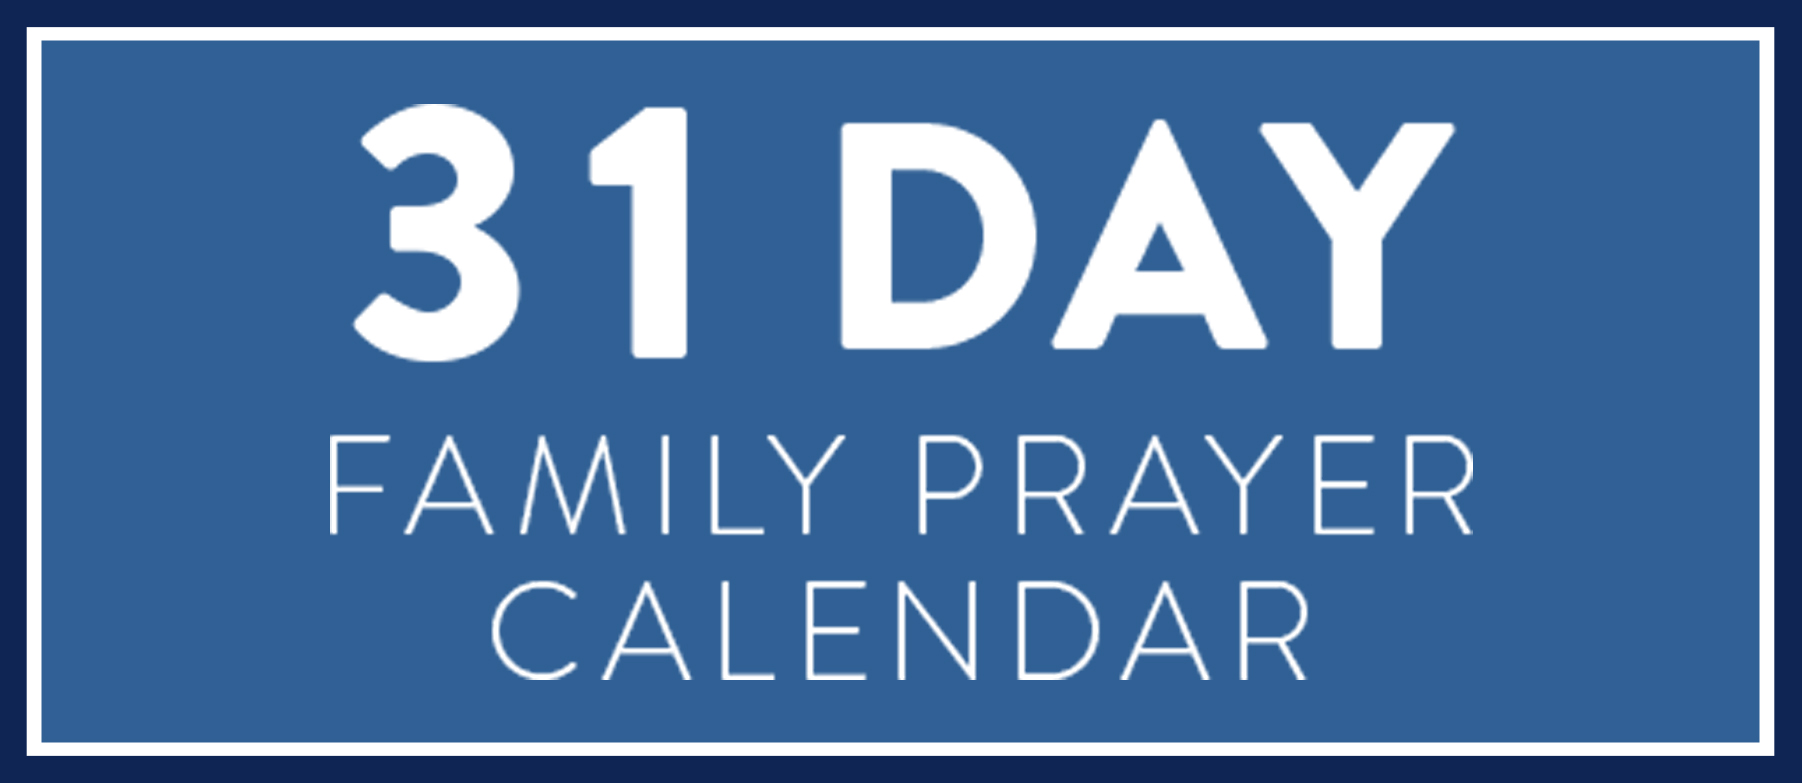 Start a family habit of praying together this month! Use these 31 days of prayer prompts to pray as a family all month long. Pray at breakfast, dinner, in the car or at bedtime but use this guide to help your whole family pray each day.